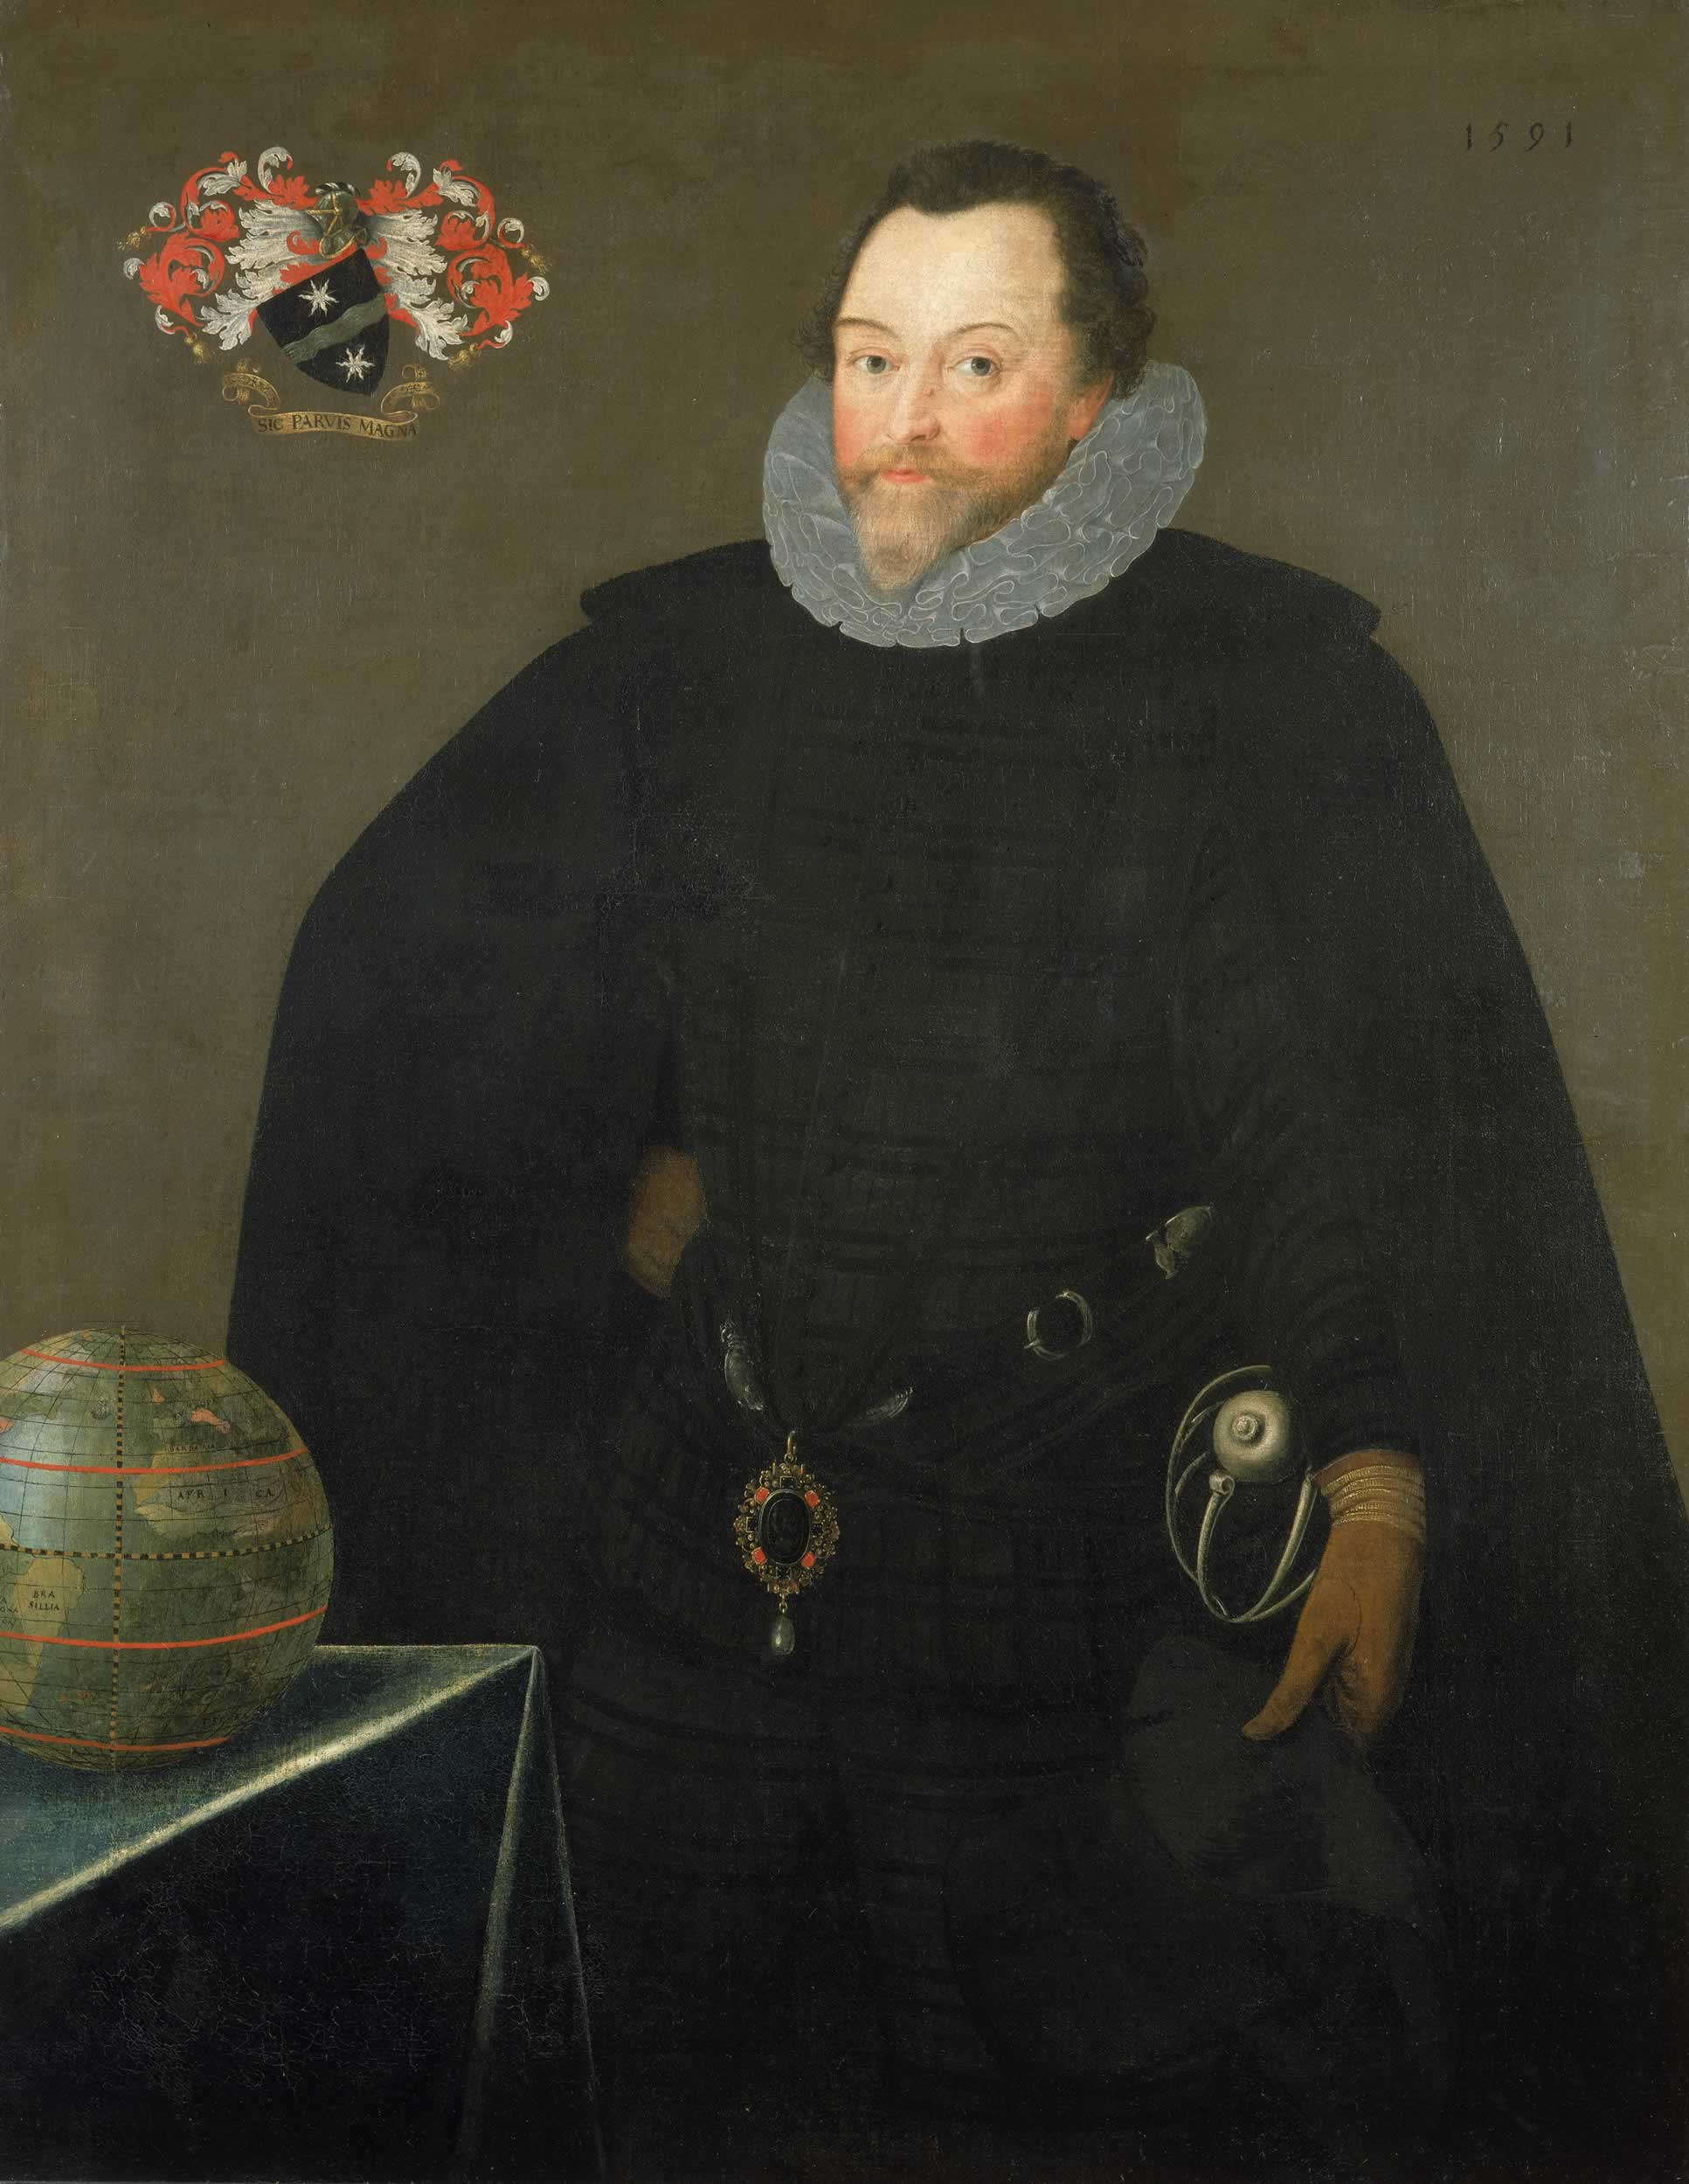 Tudor hero Sir Francis Drake left his drum behind, to be beat in times of national peril. Has anyone beaten Drake's Drum since his death in 1596?